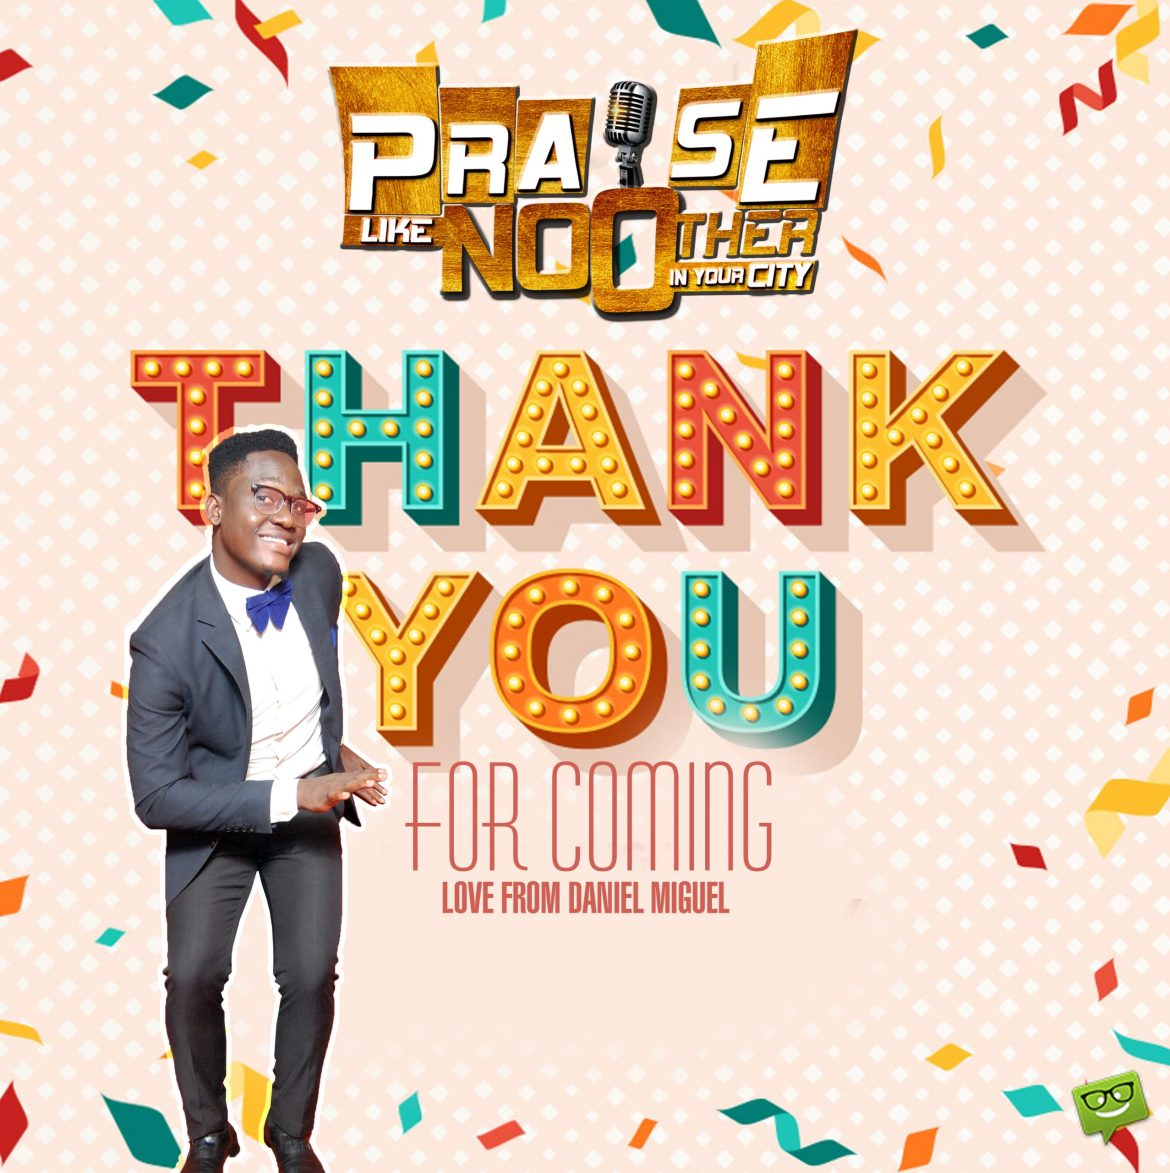 Daniel Miguel Appreciate everyone who came for Praise like no Other in Ibadan City